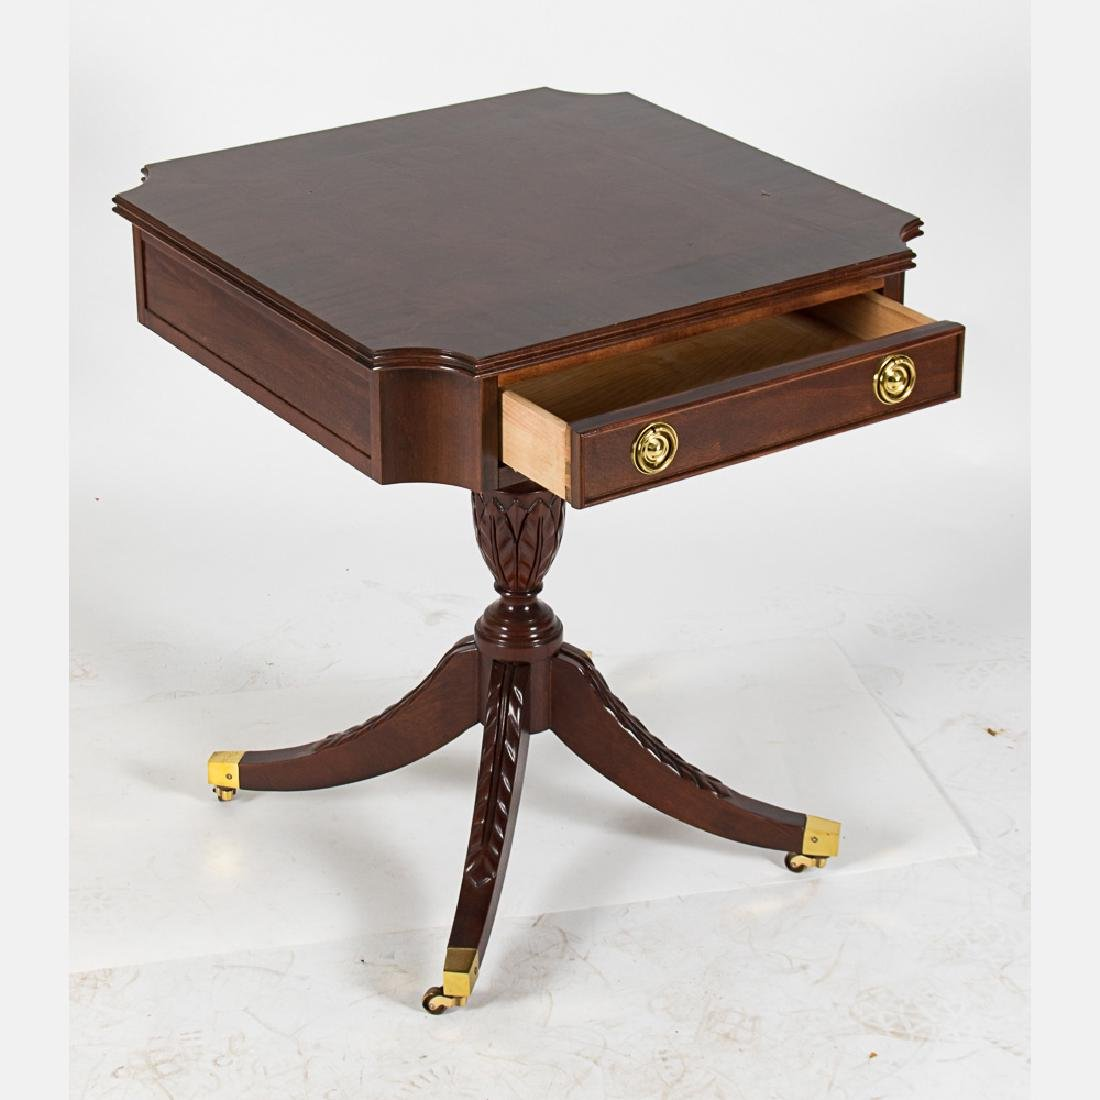 A Regency Style Mahogany Side Table with Single Drawer - 5